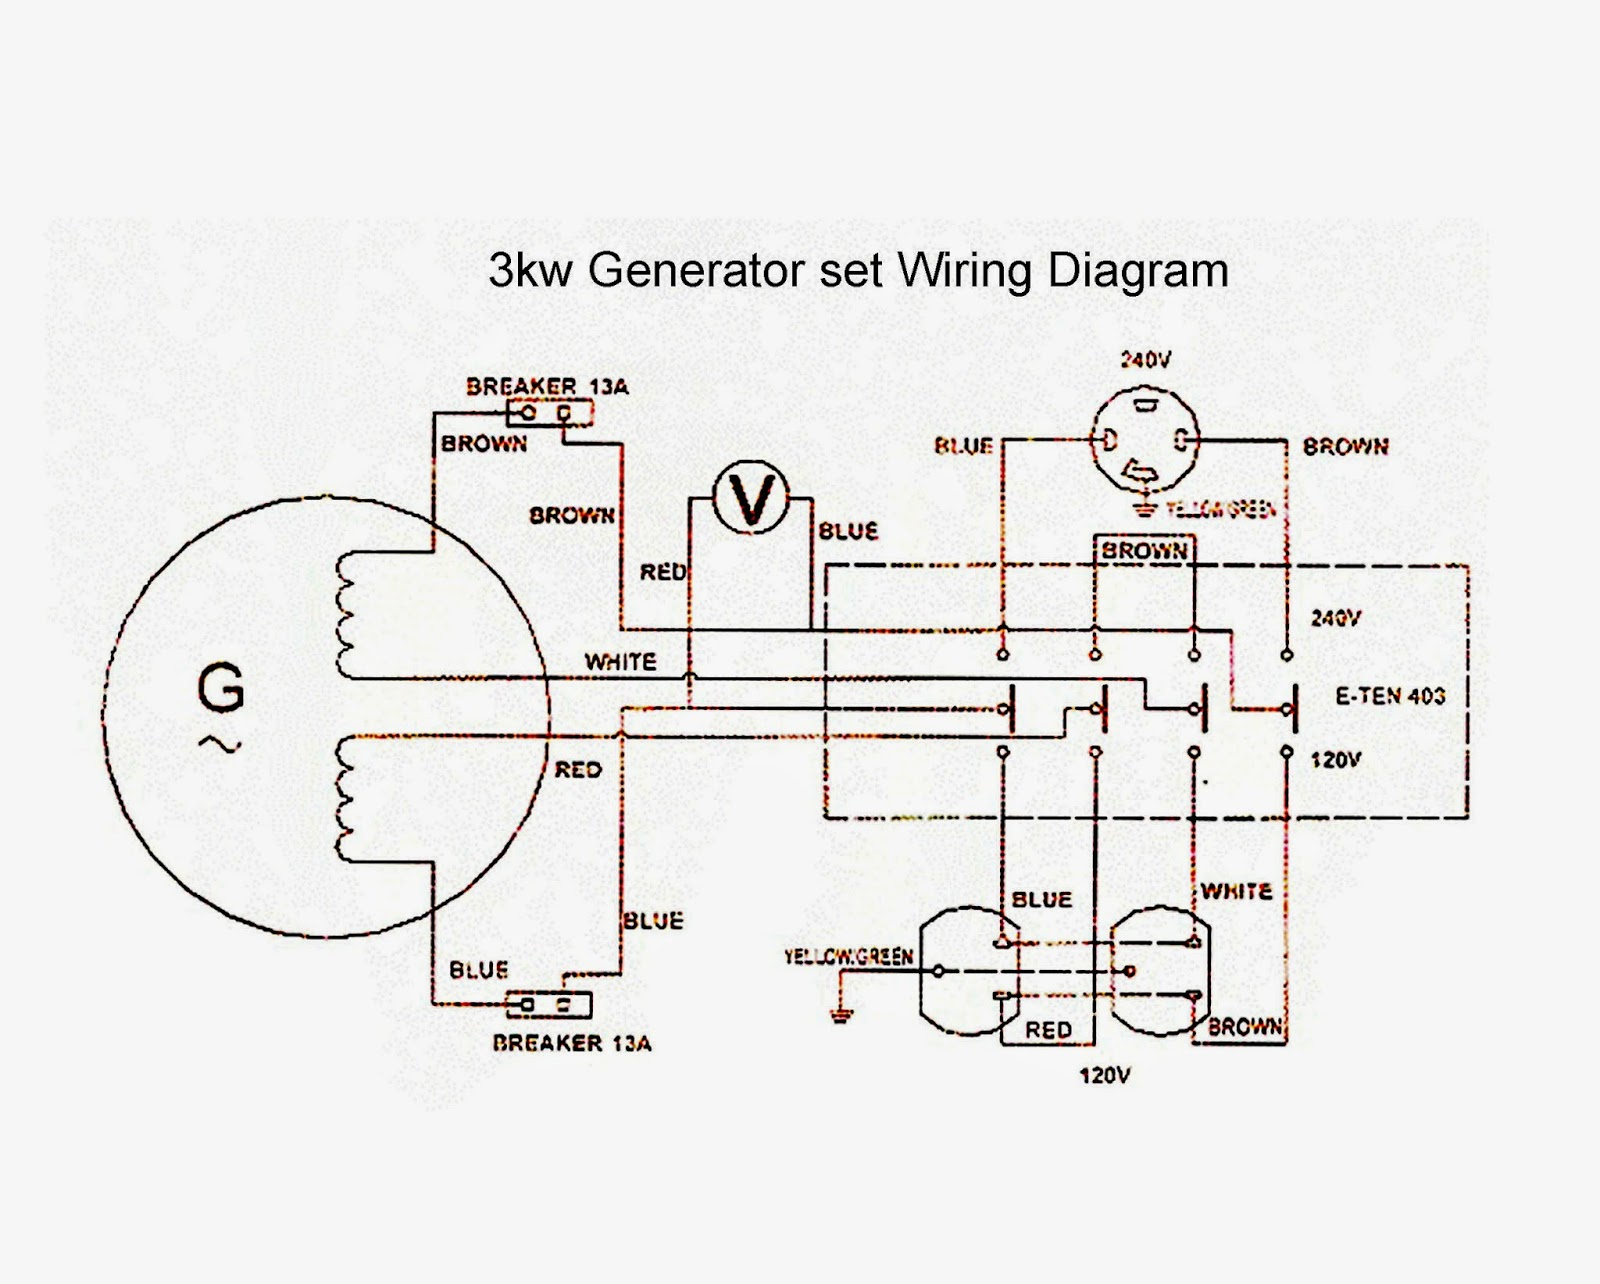 medium resolution of house wiring diagram freeware wiring diagram advance free home wiring diagram software home wiring diagram freeware